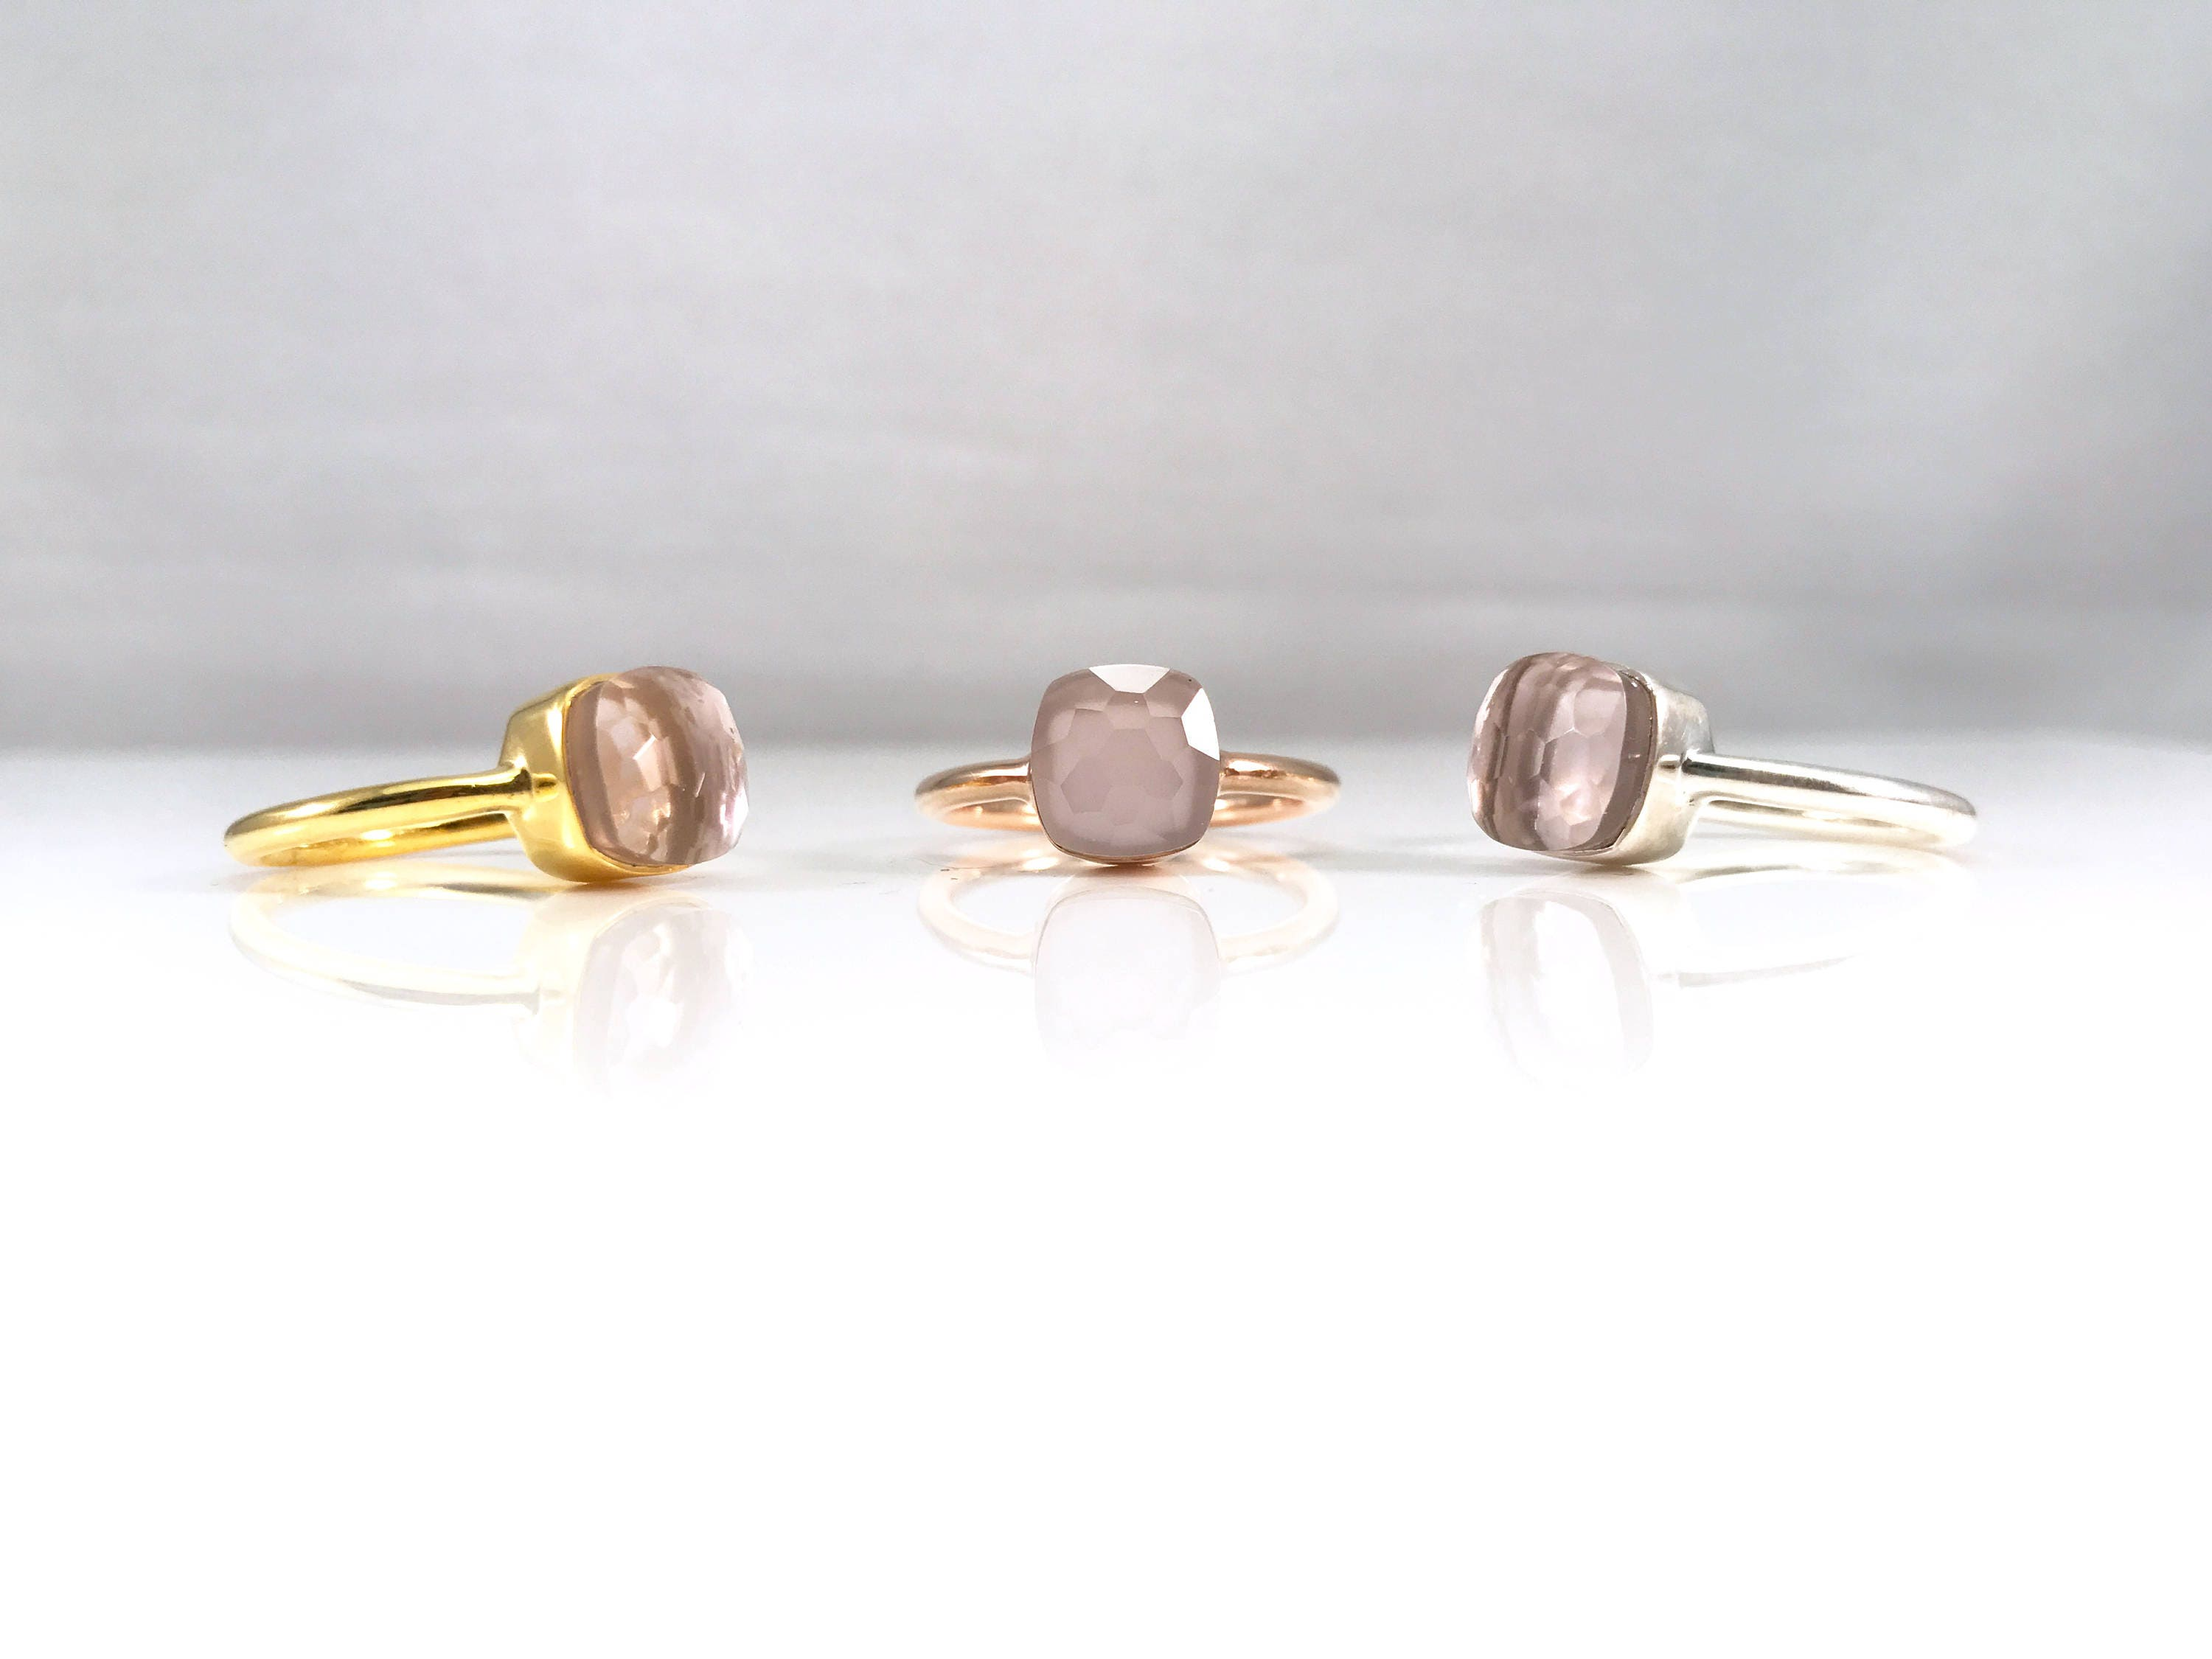 compassion cushion gold elixir quartz dualitas rose products rings polished ring ct